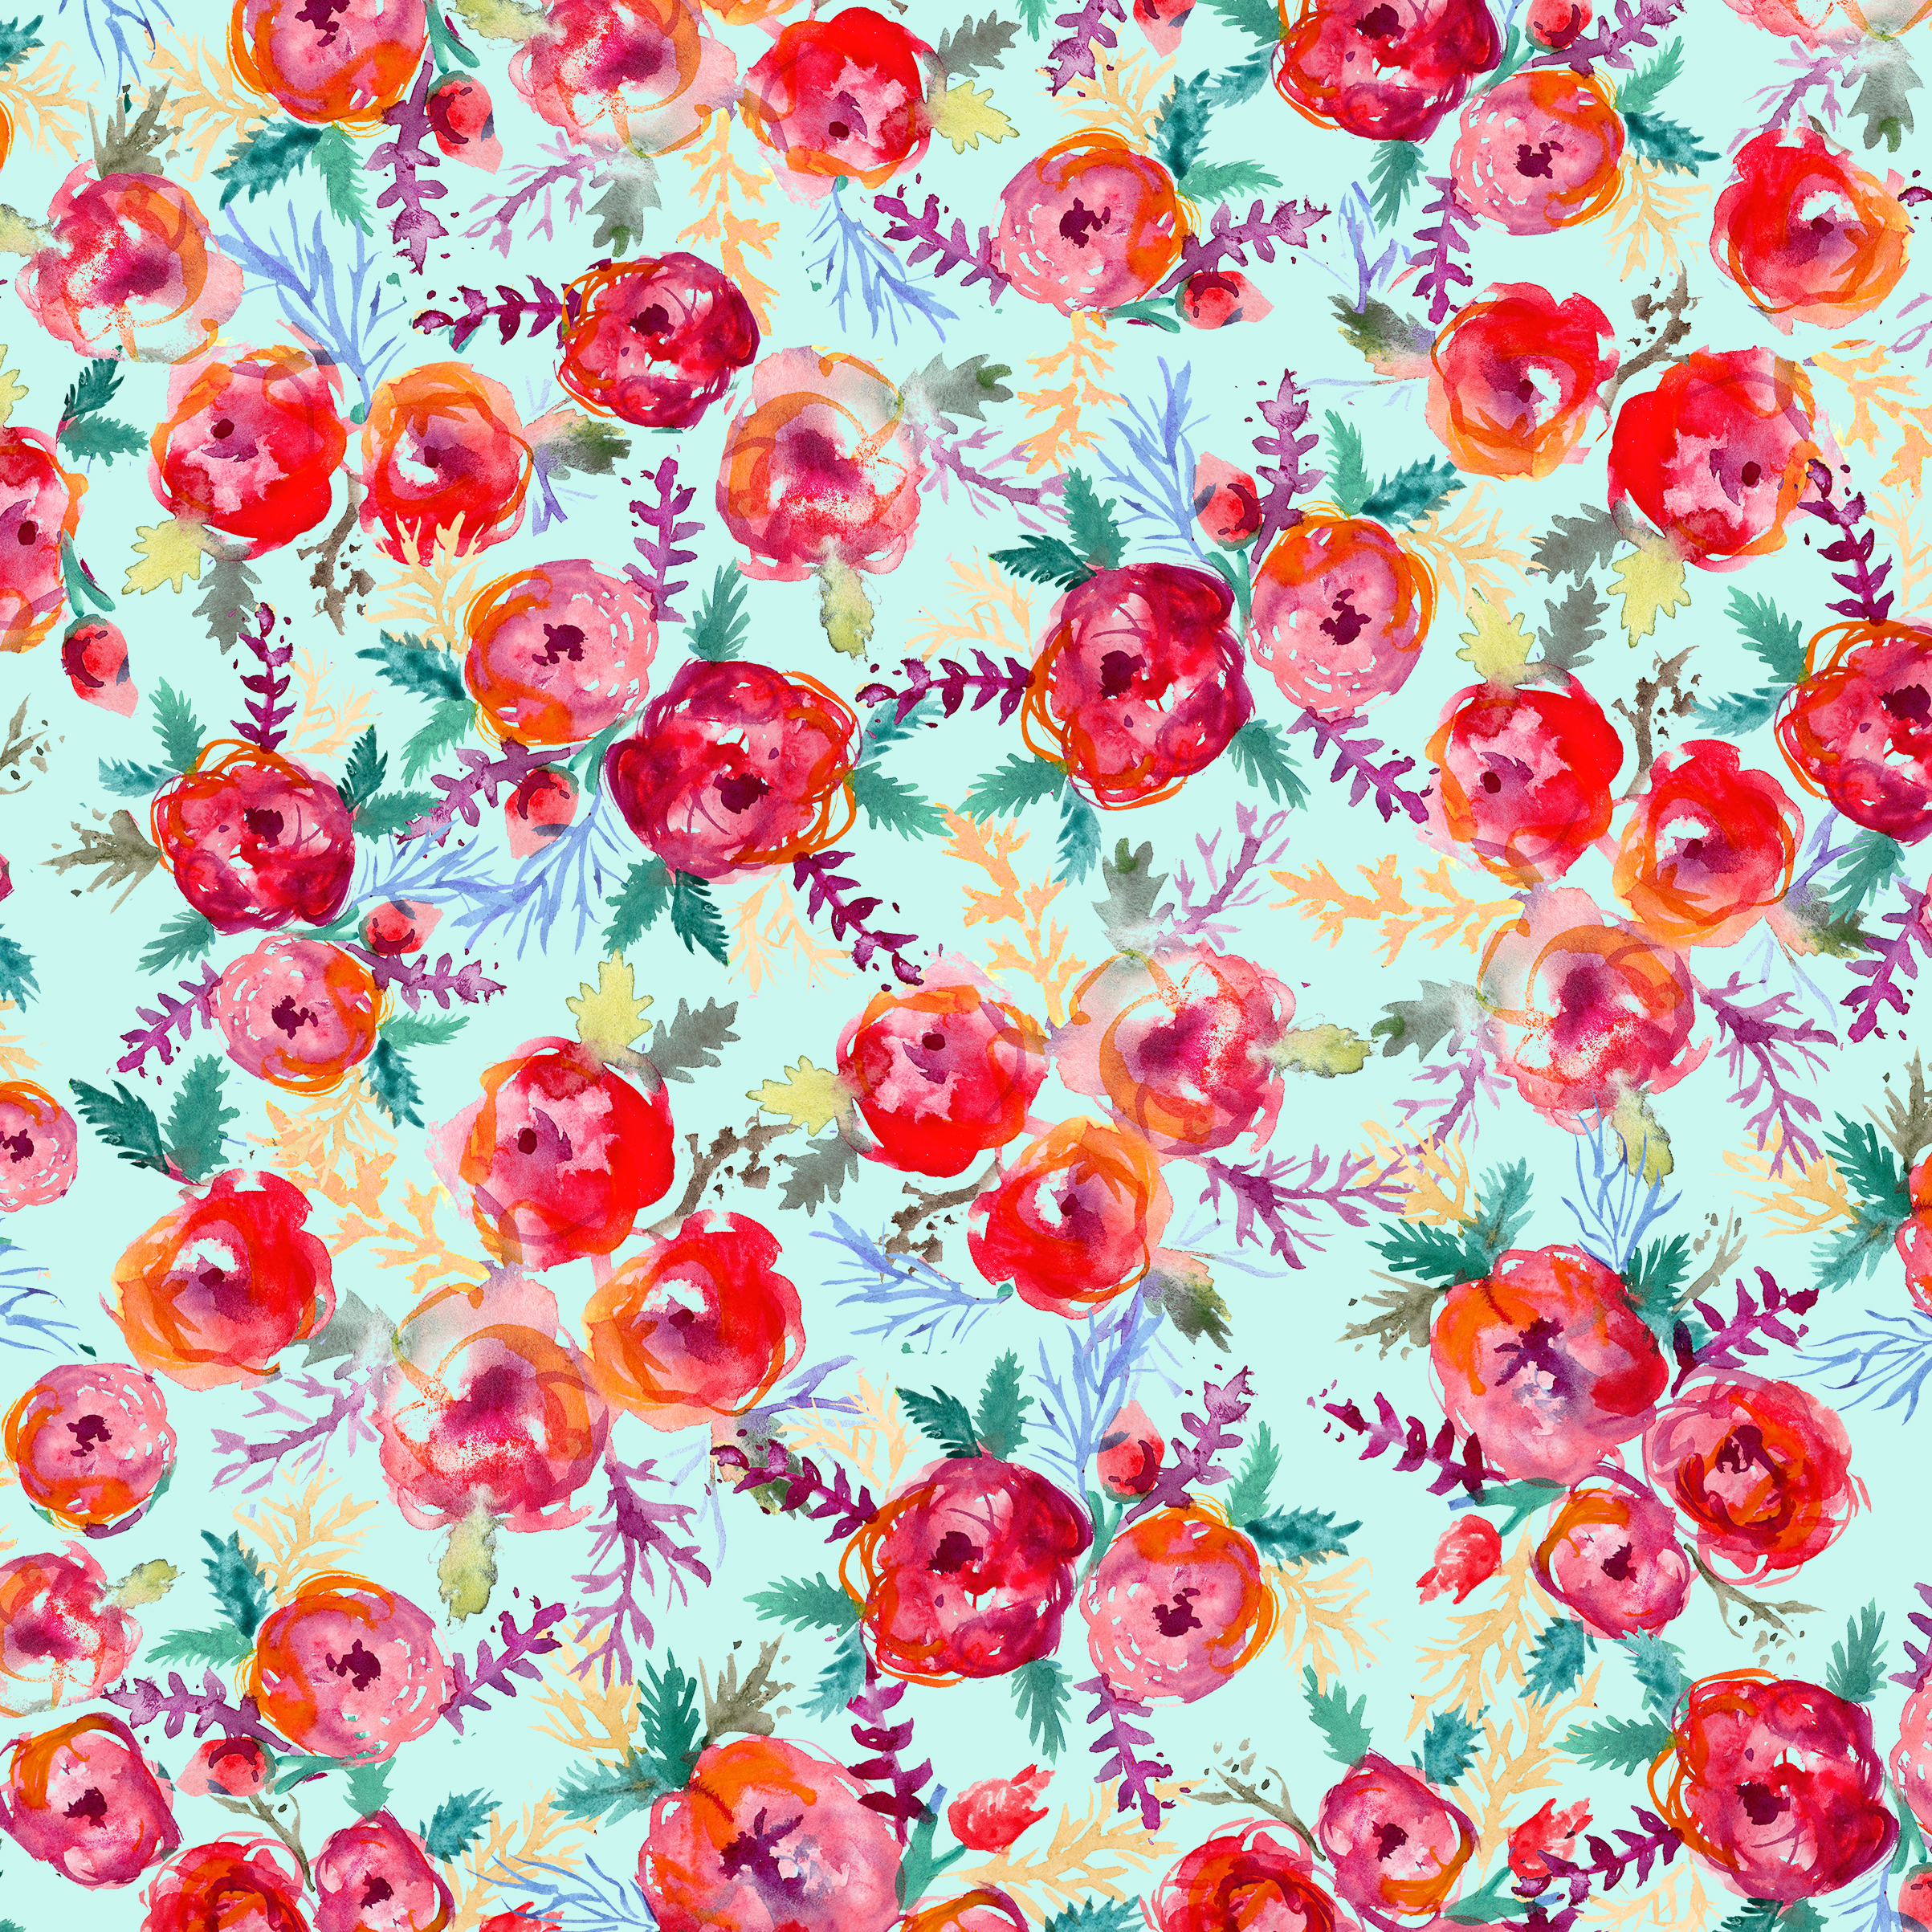 Lilly Pulitzer Patterns Lilly Pulitzer On Behance